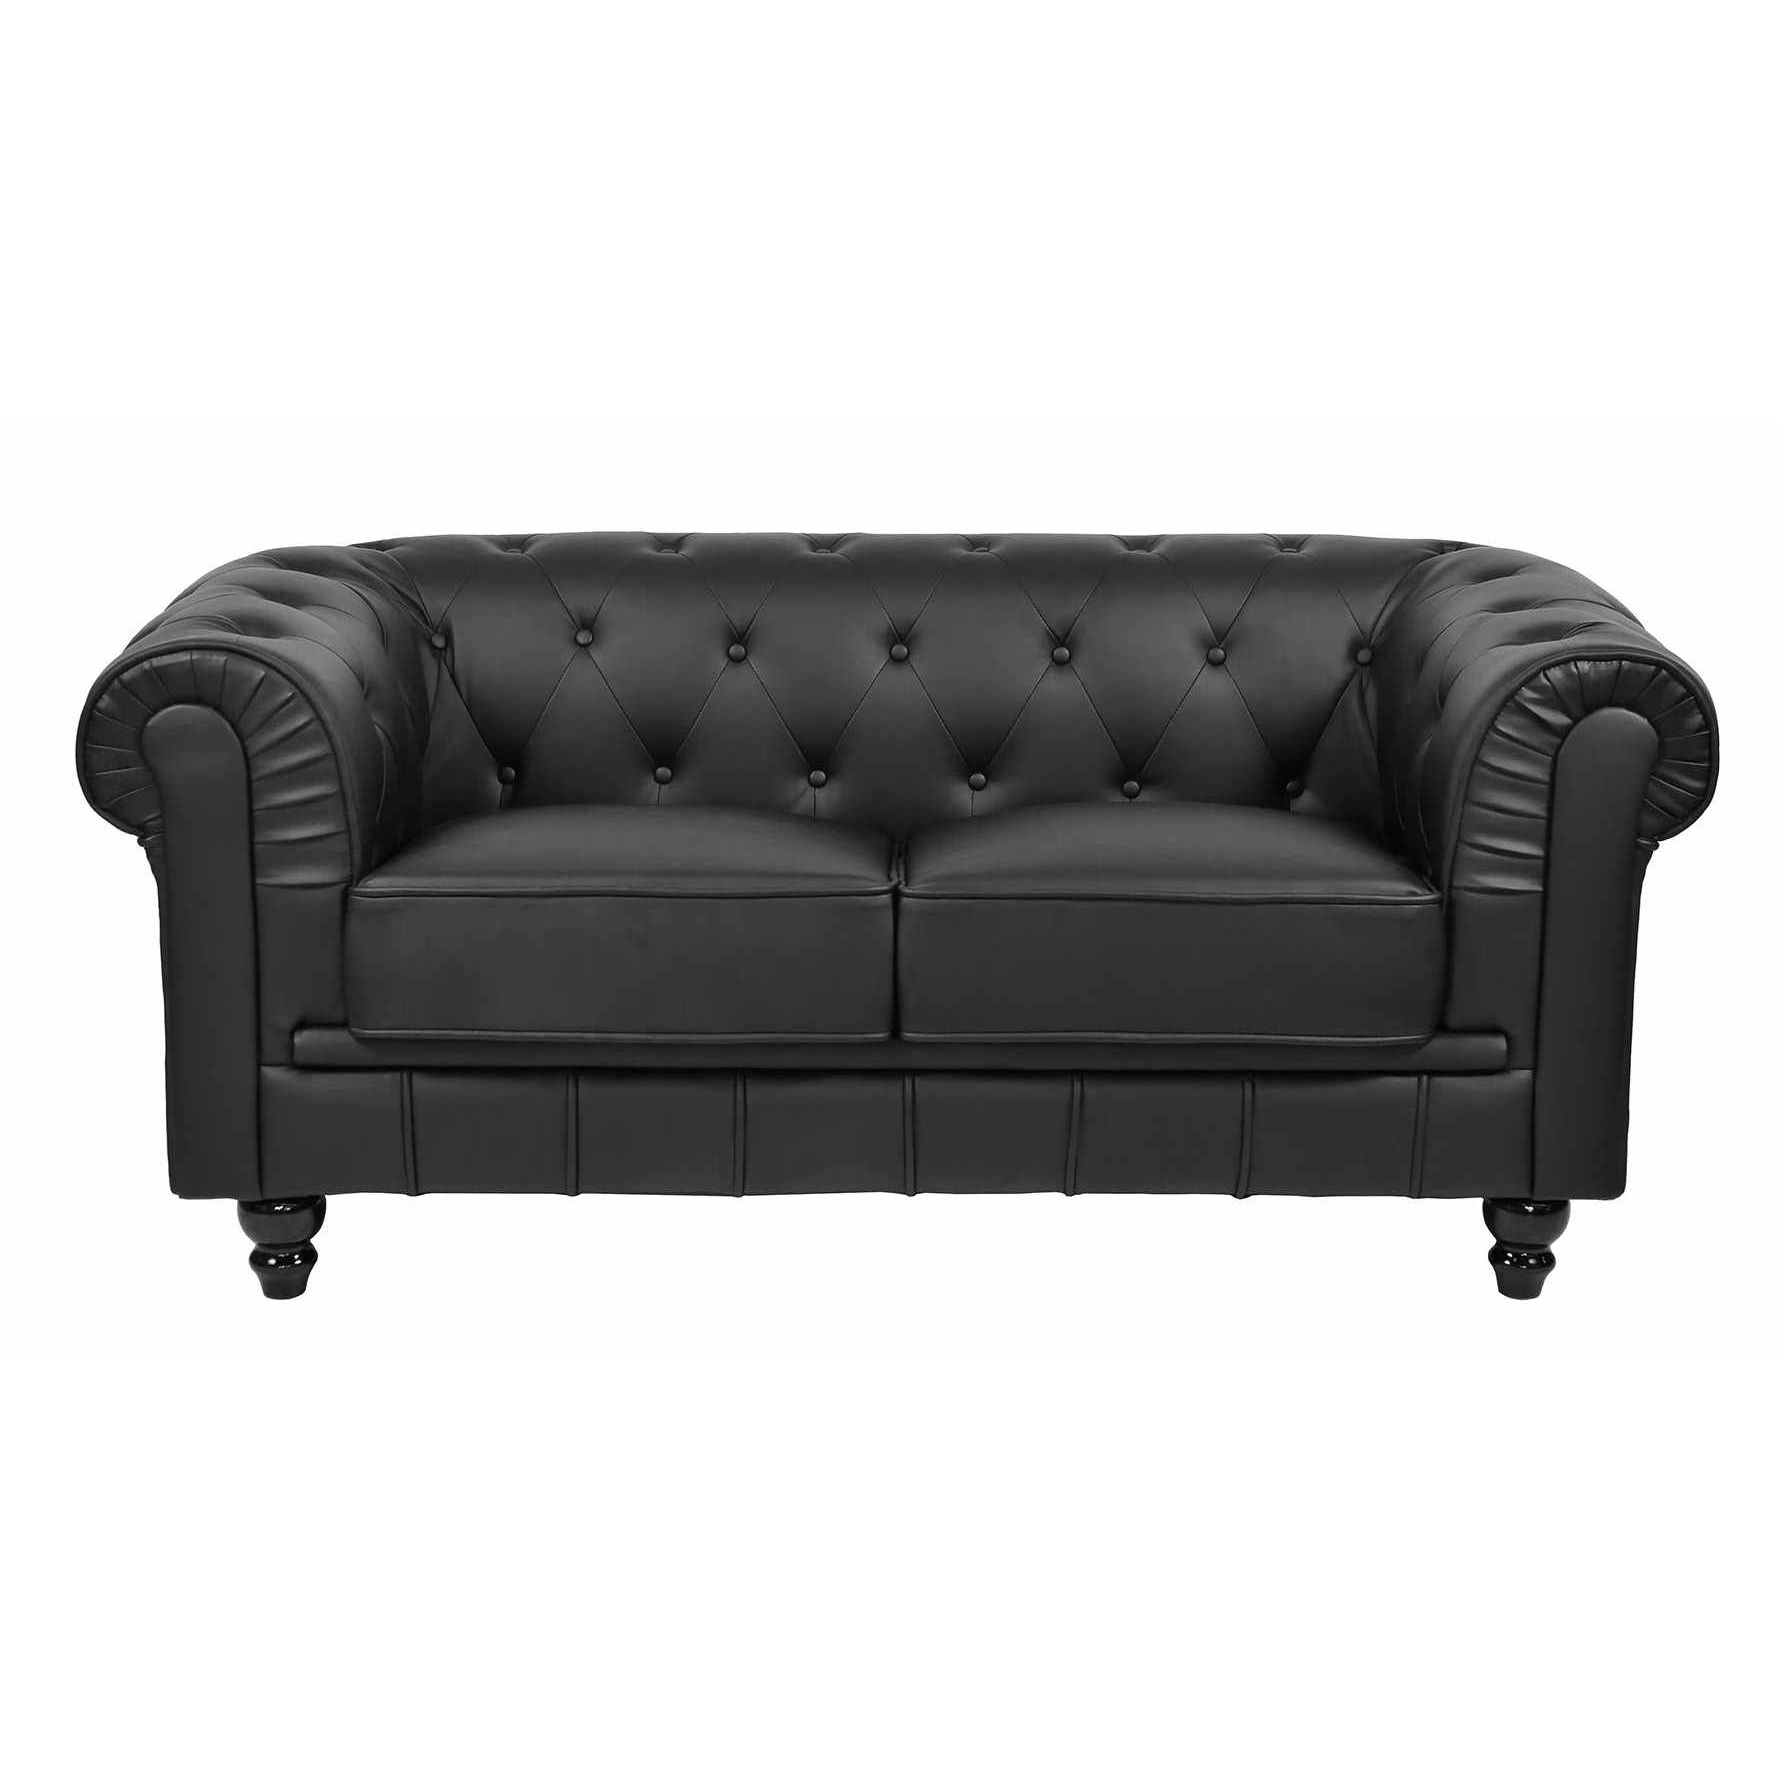 deco in paris canape 2 places noir chesterfield can. Black Bedroom Furniture Sets. Home Design Ideas